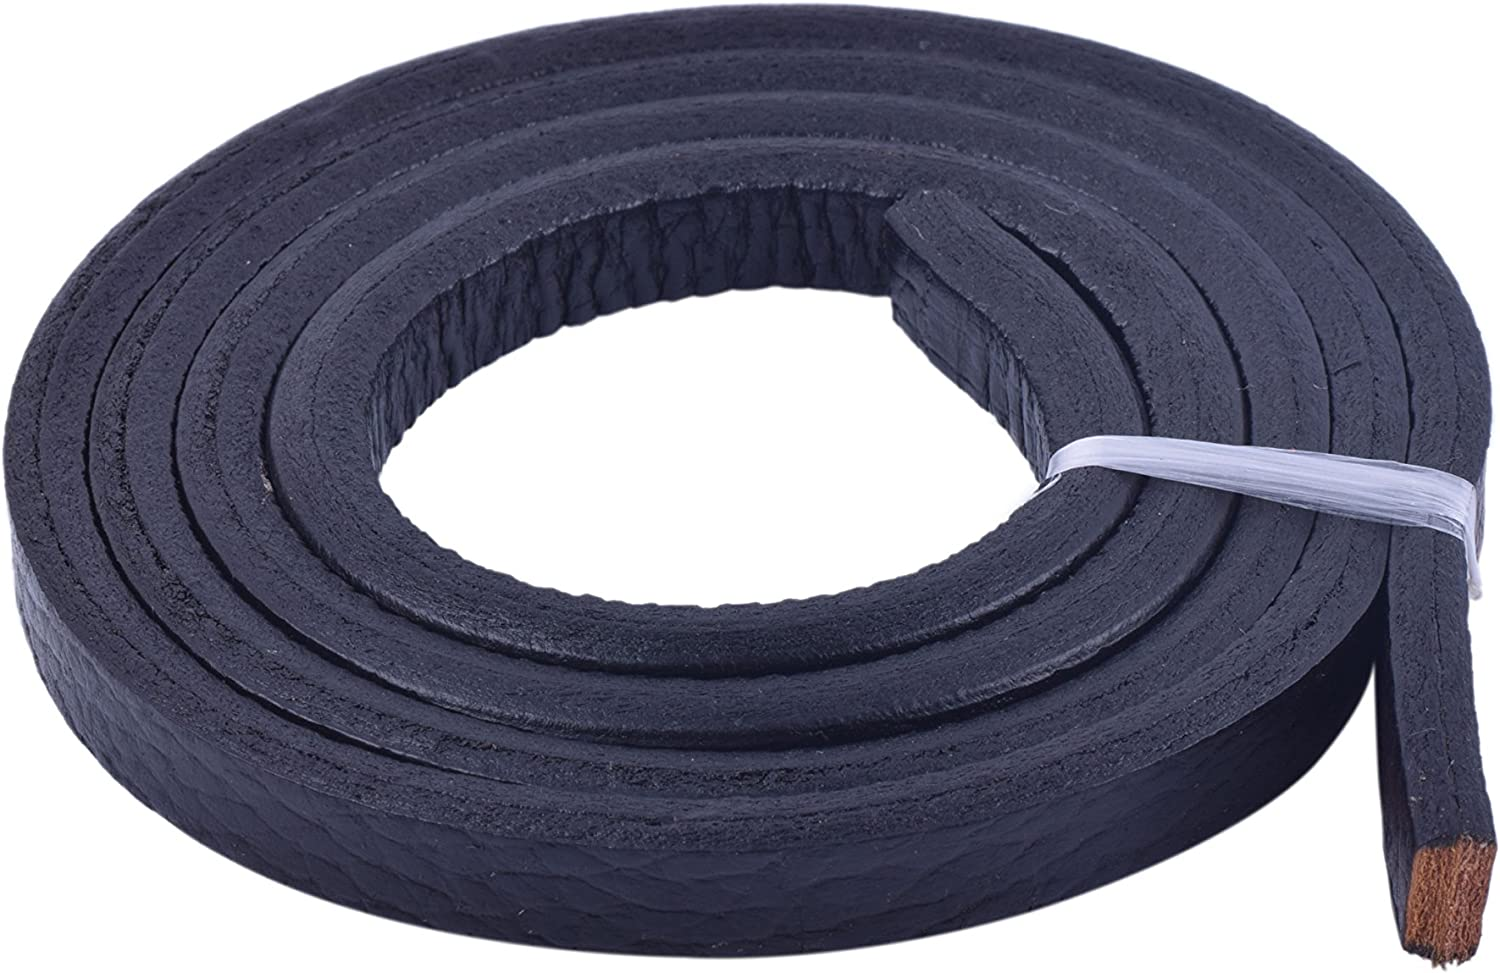 KONMAY 1 Meter Black with White Cord Stitched 10.0x6.0mm Licorice Leather Cord